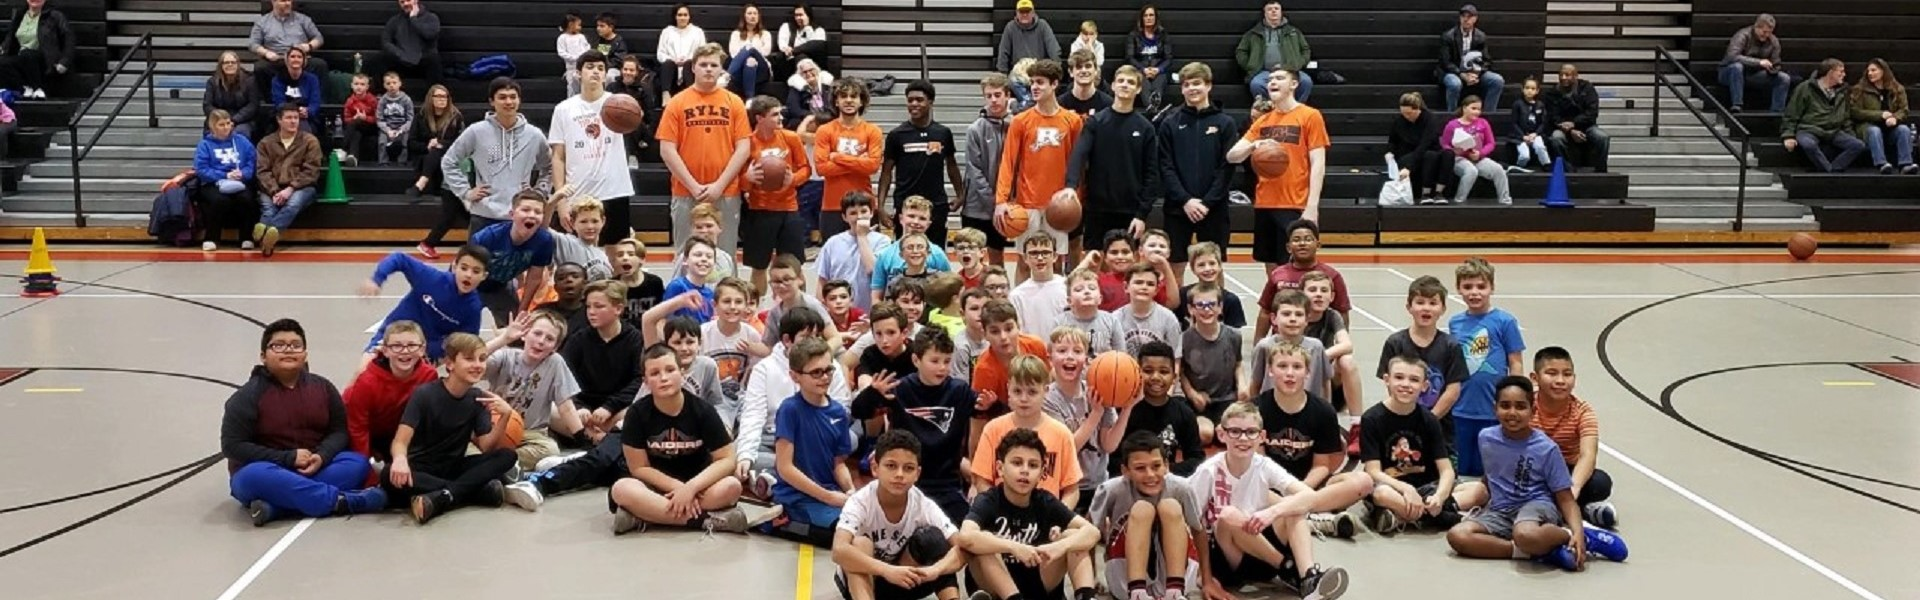 NH Basketball - Ryle Raiders Camp